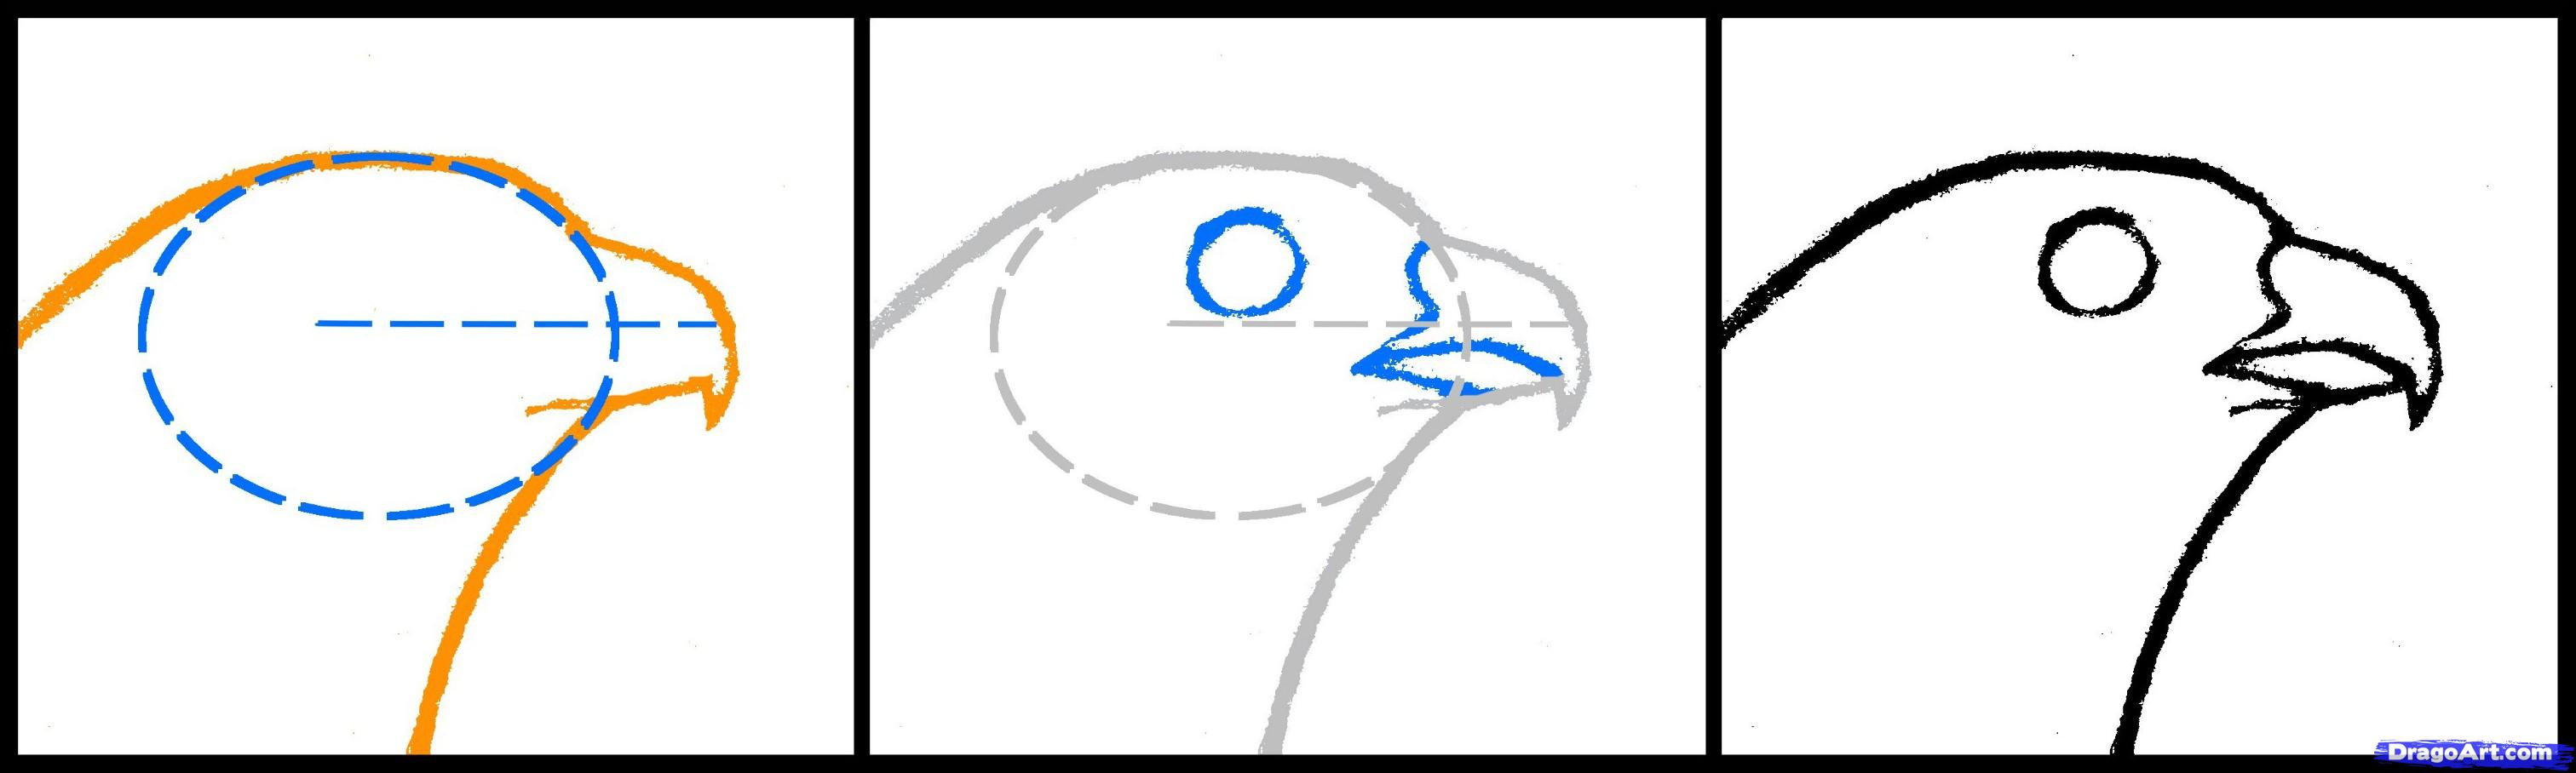 3024x908 how to draw a falcon head, peregrine falcon, step